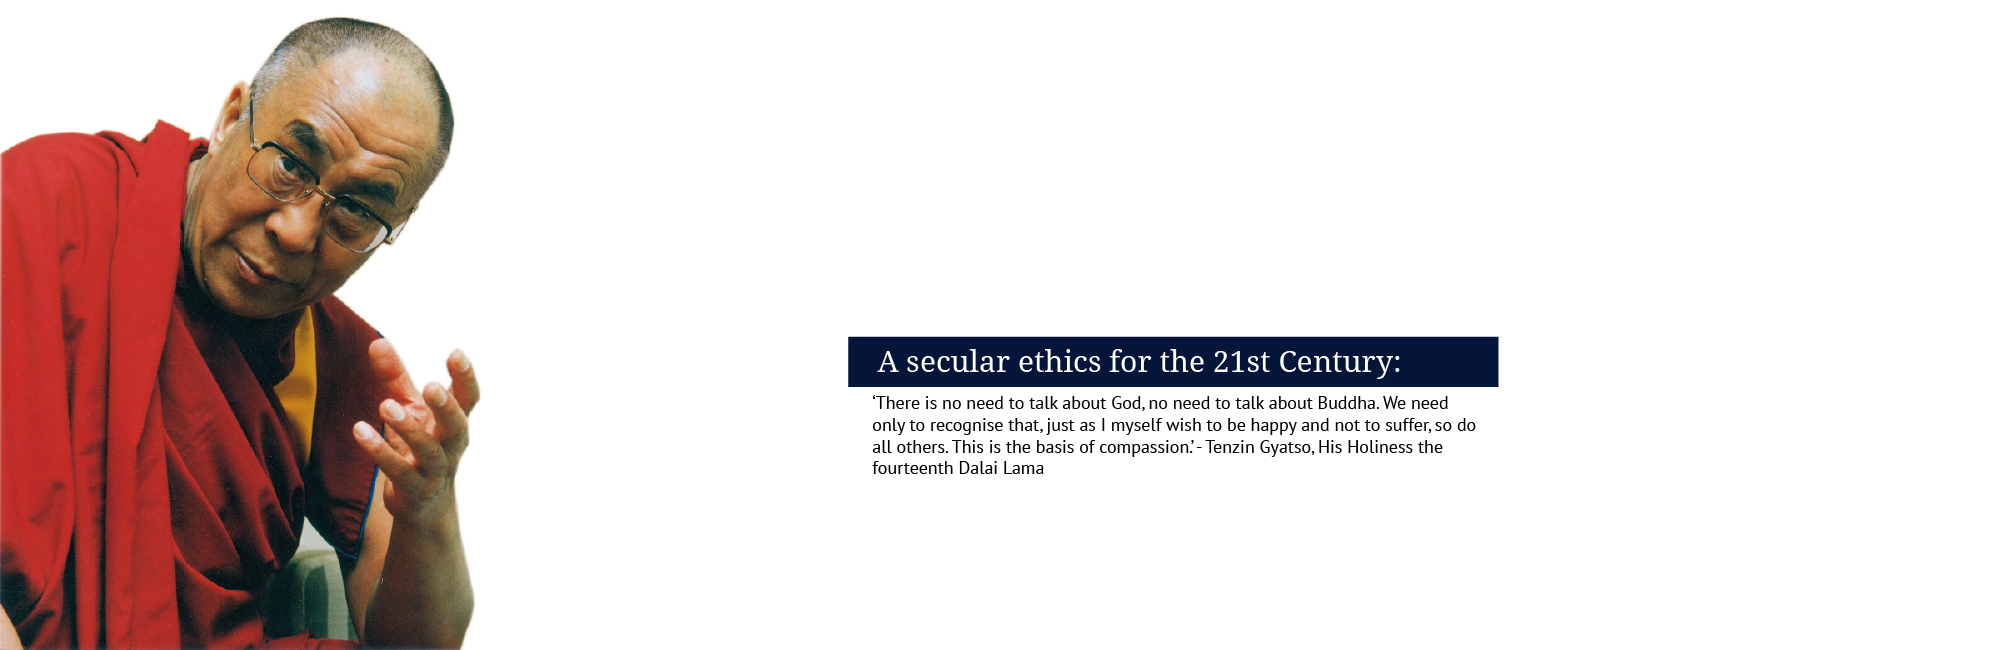 His Holiness the Dalai Lama about secular ethics